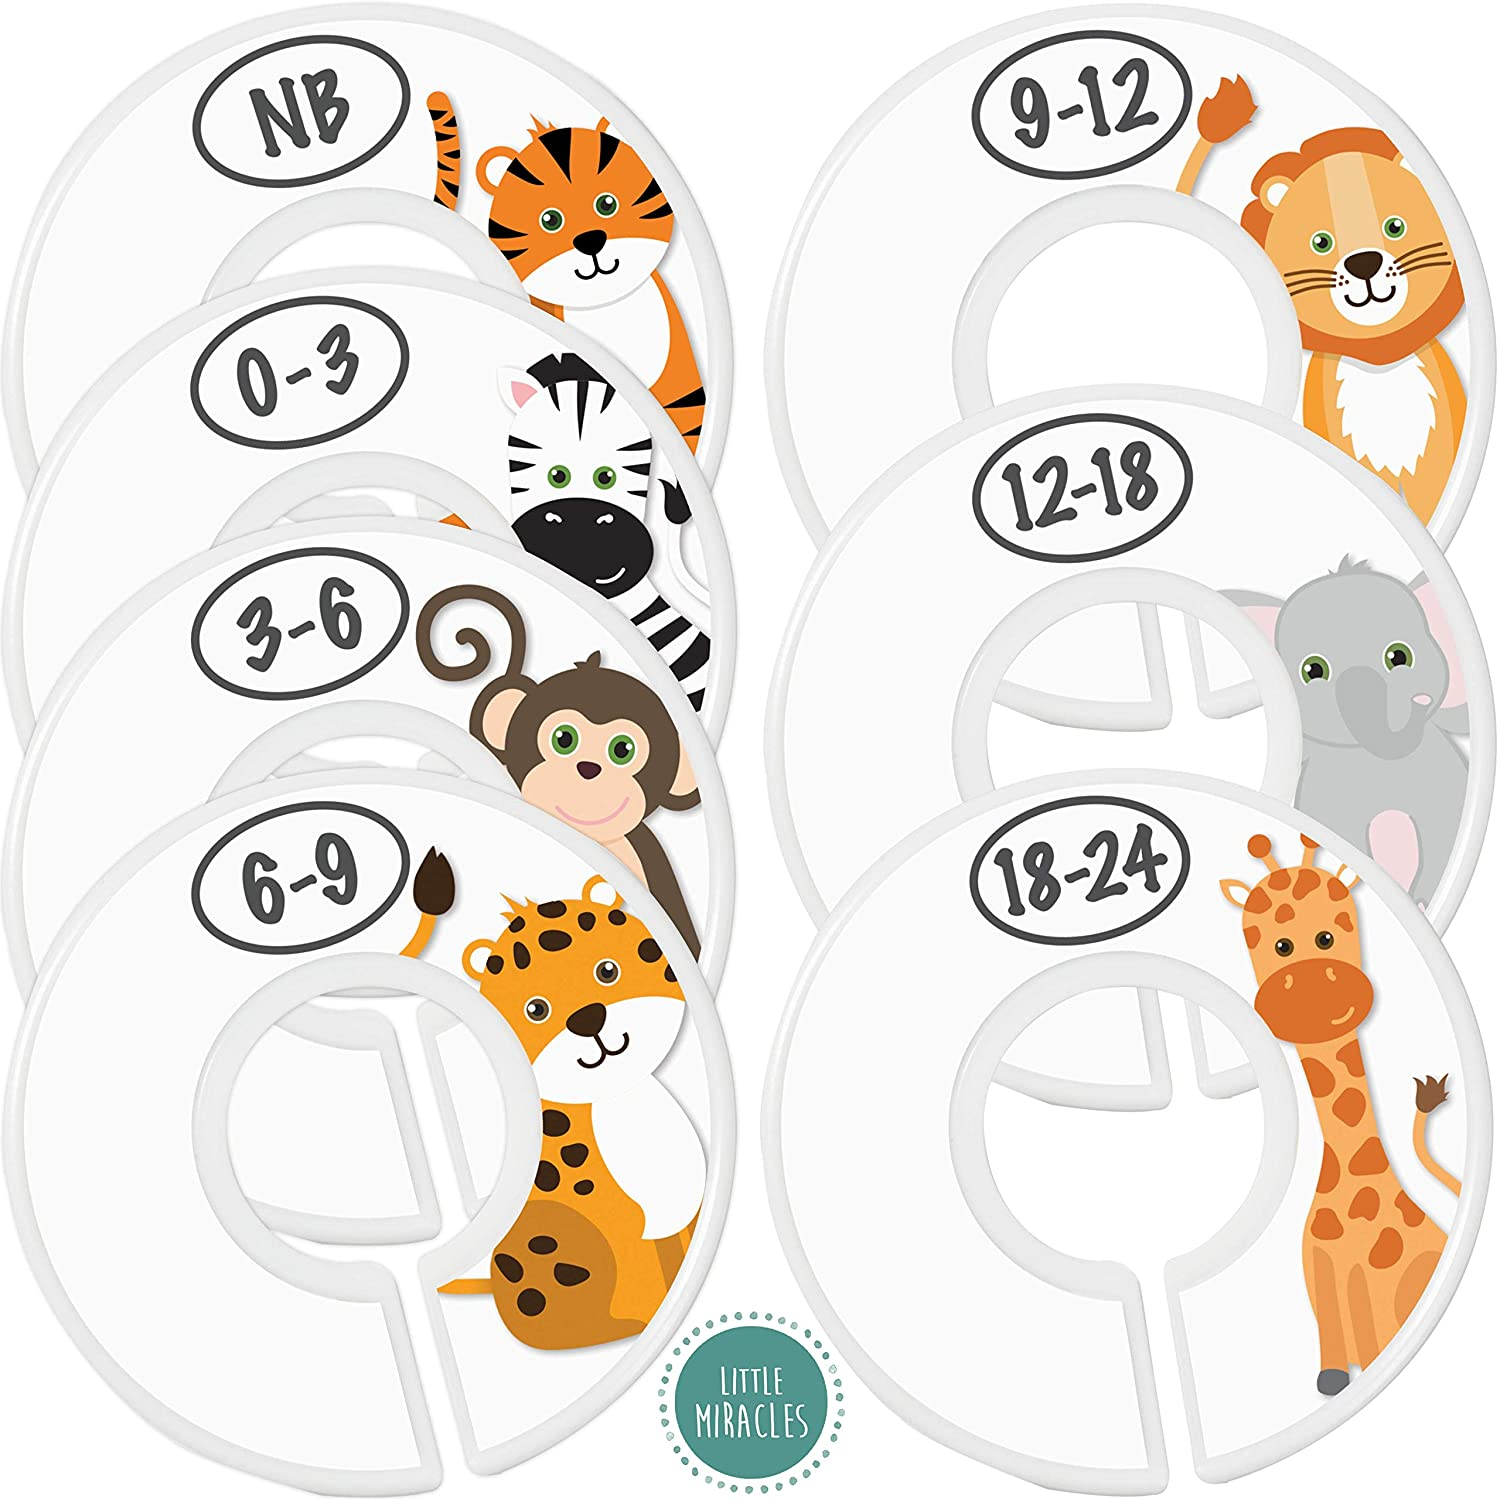 Baby Closet Size Dividers - 7X Safari Nursery Closet Dividers for Baby Clothes - Elephant Giraffe Zebra Lion Monkey Cheetah Nursery Decor - Baby Closet Dividers for Boy or Girl - [Safari] [White]